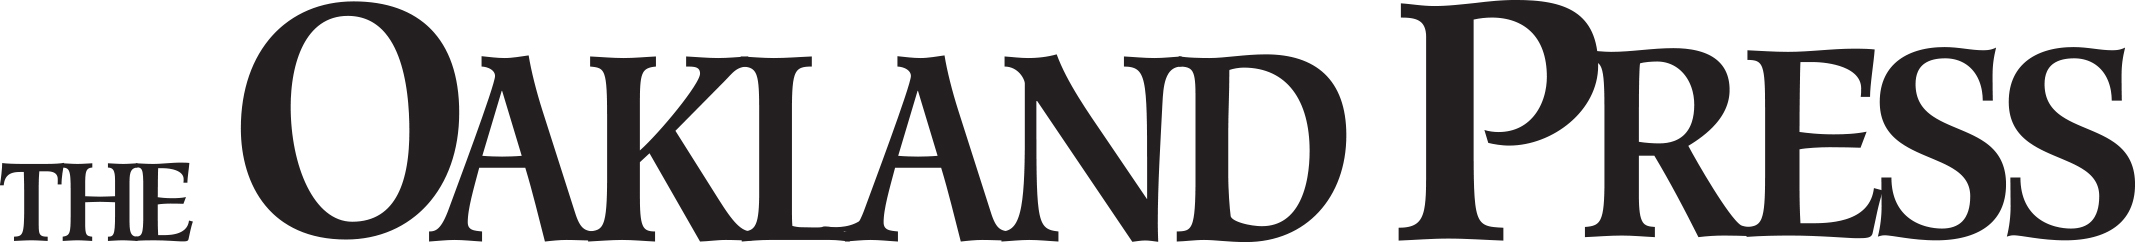 The Oakland Press Logo.jpg